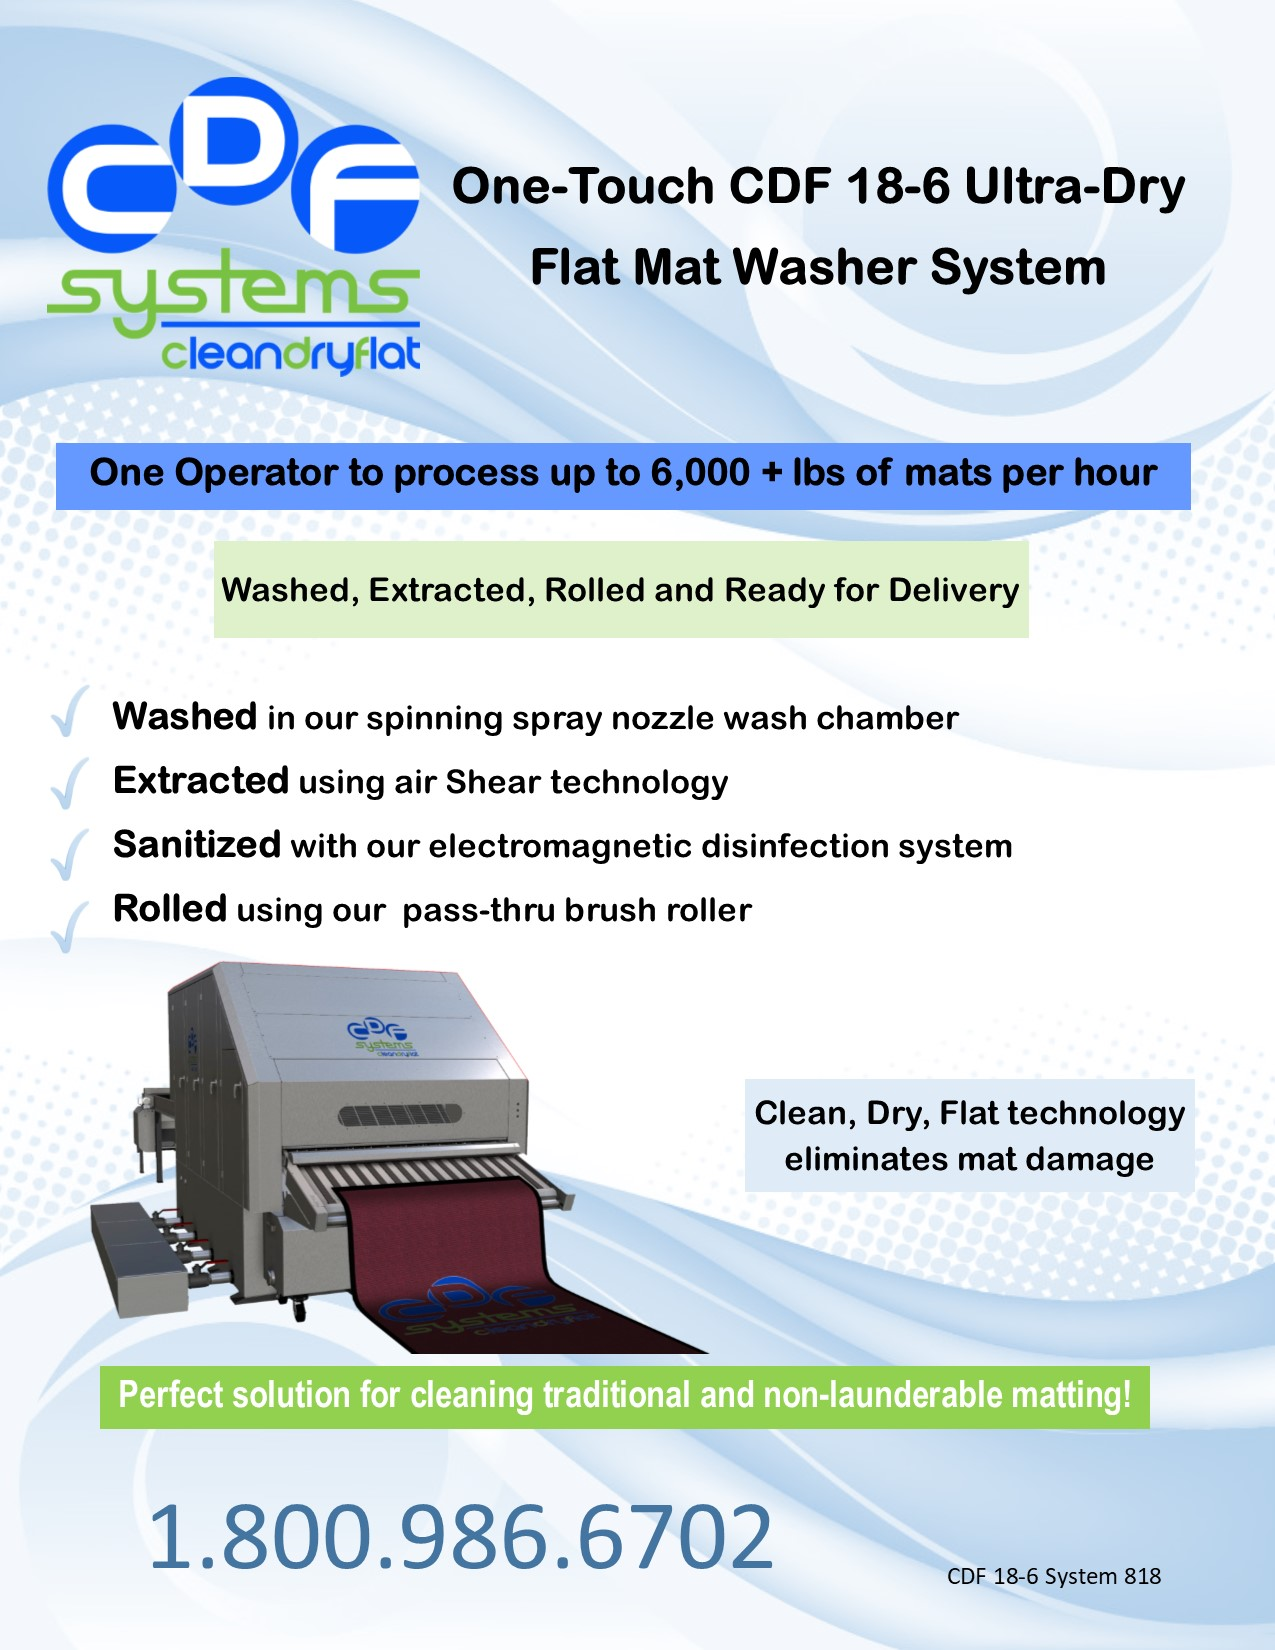 CDF 18-6 Flat Mat Washer 818 front page